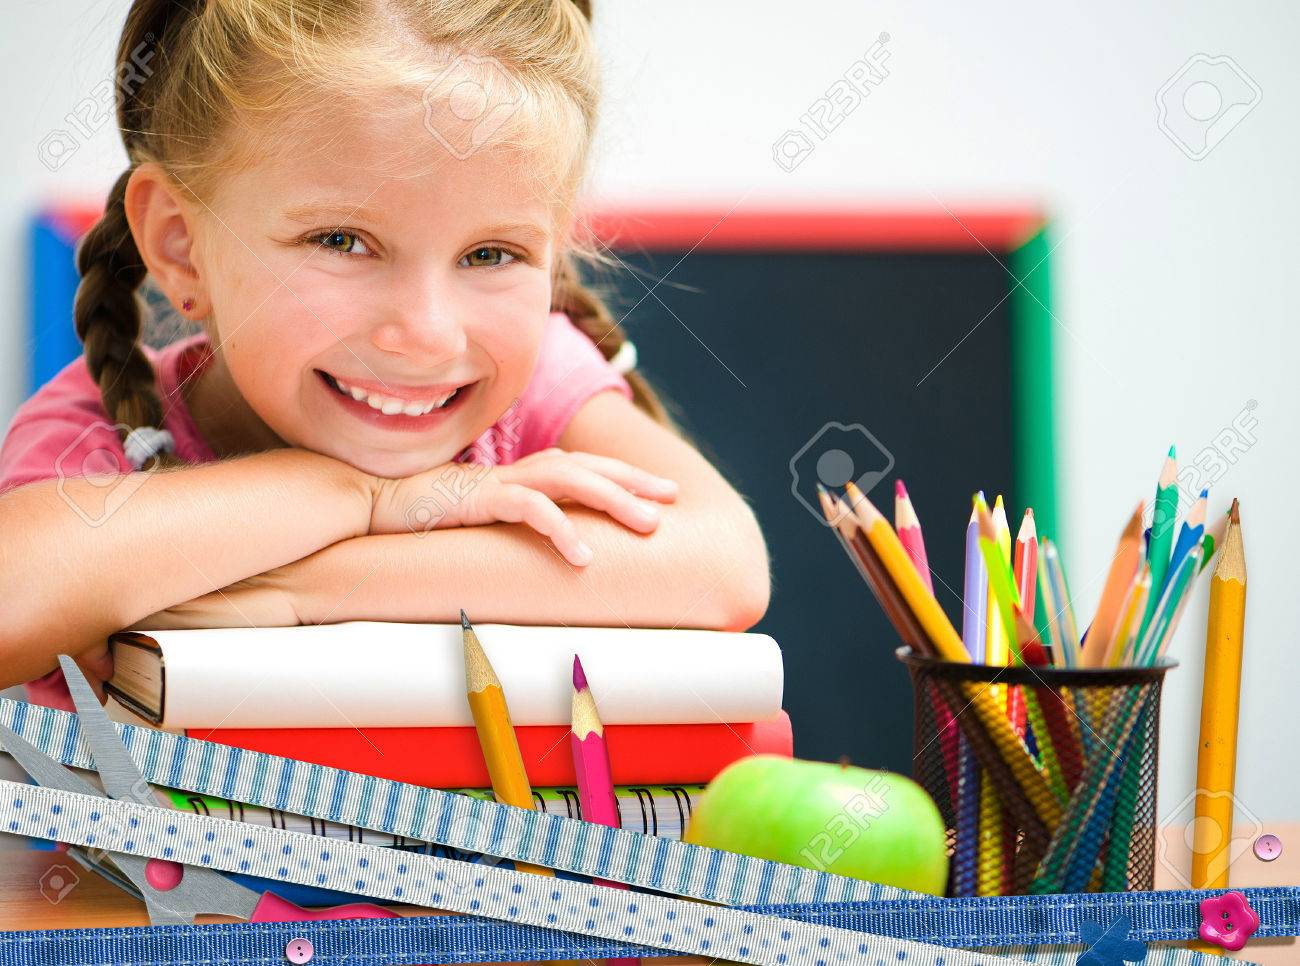 cute happy little girl on education background - 34159546